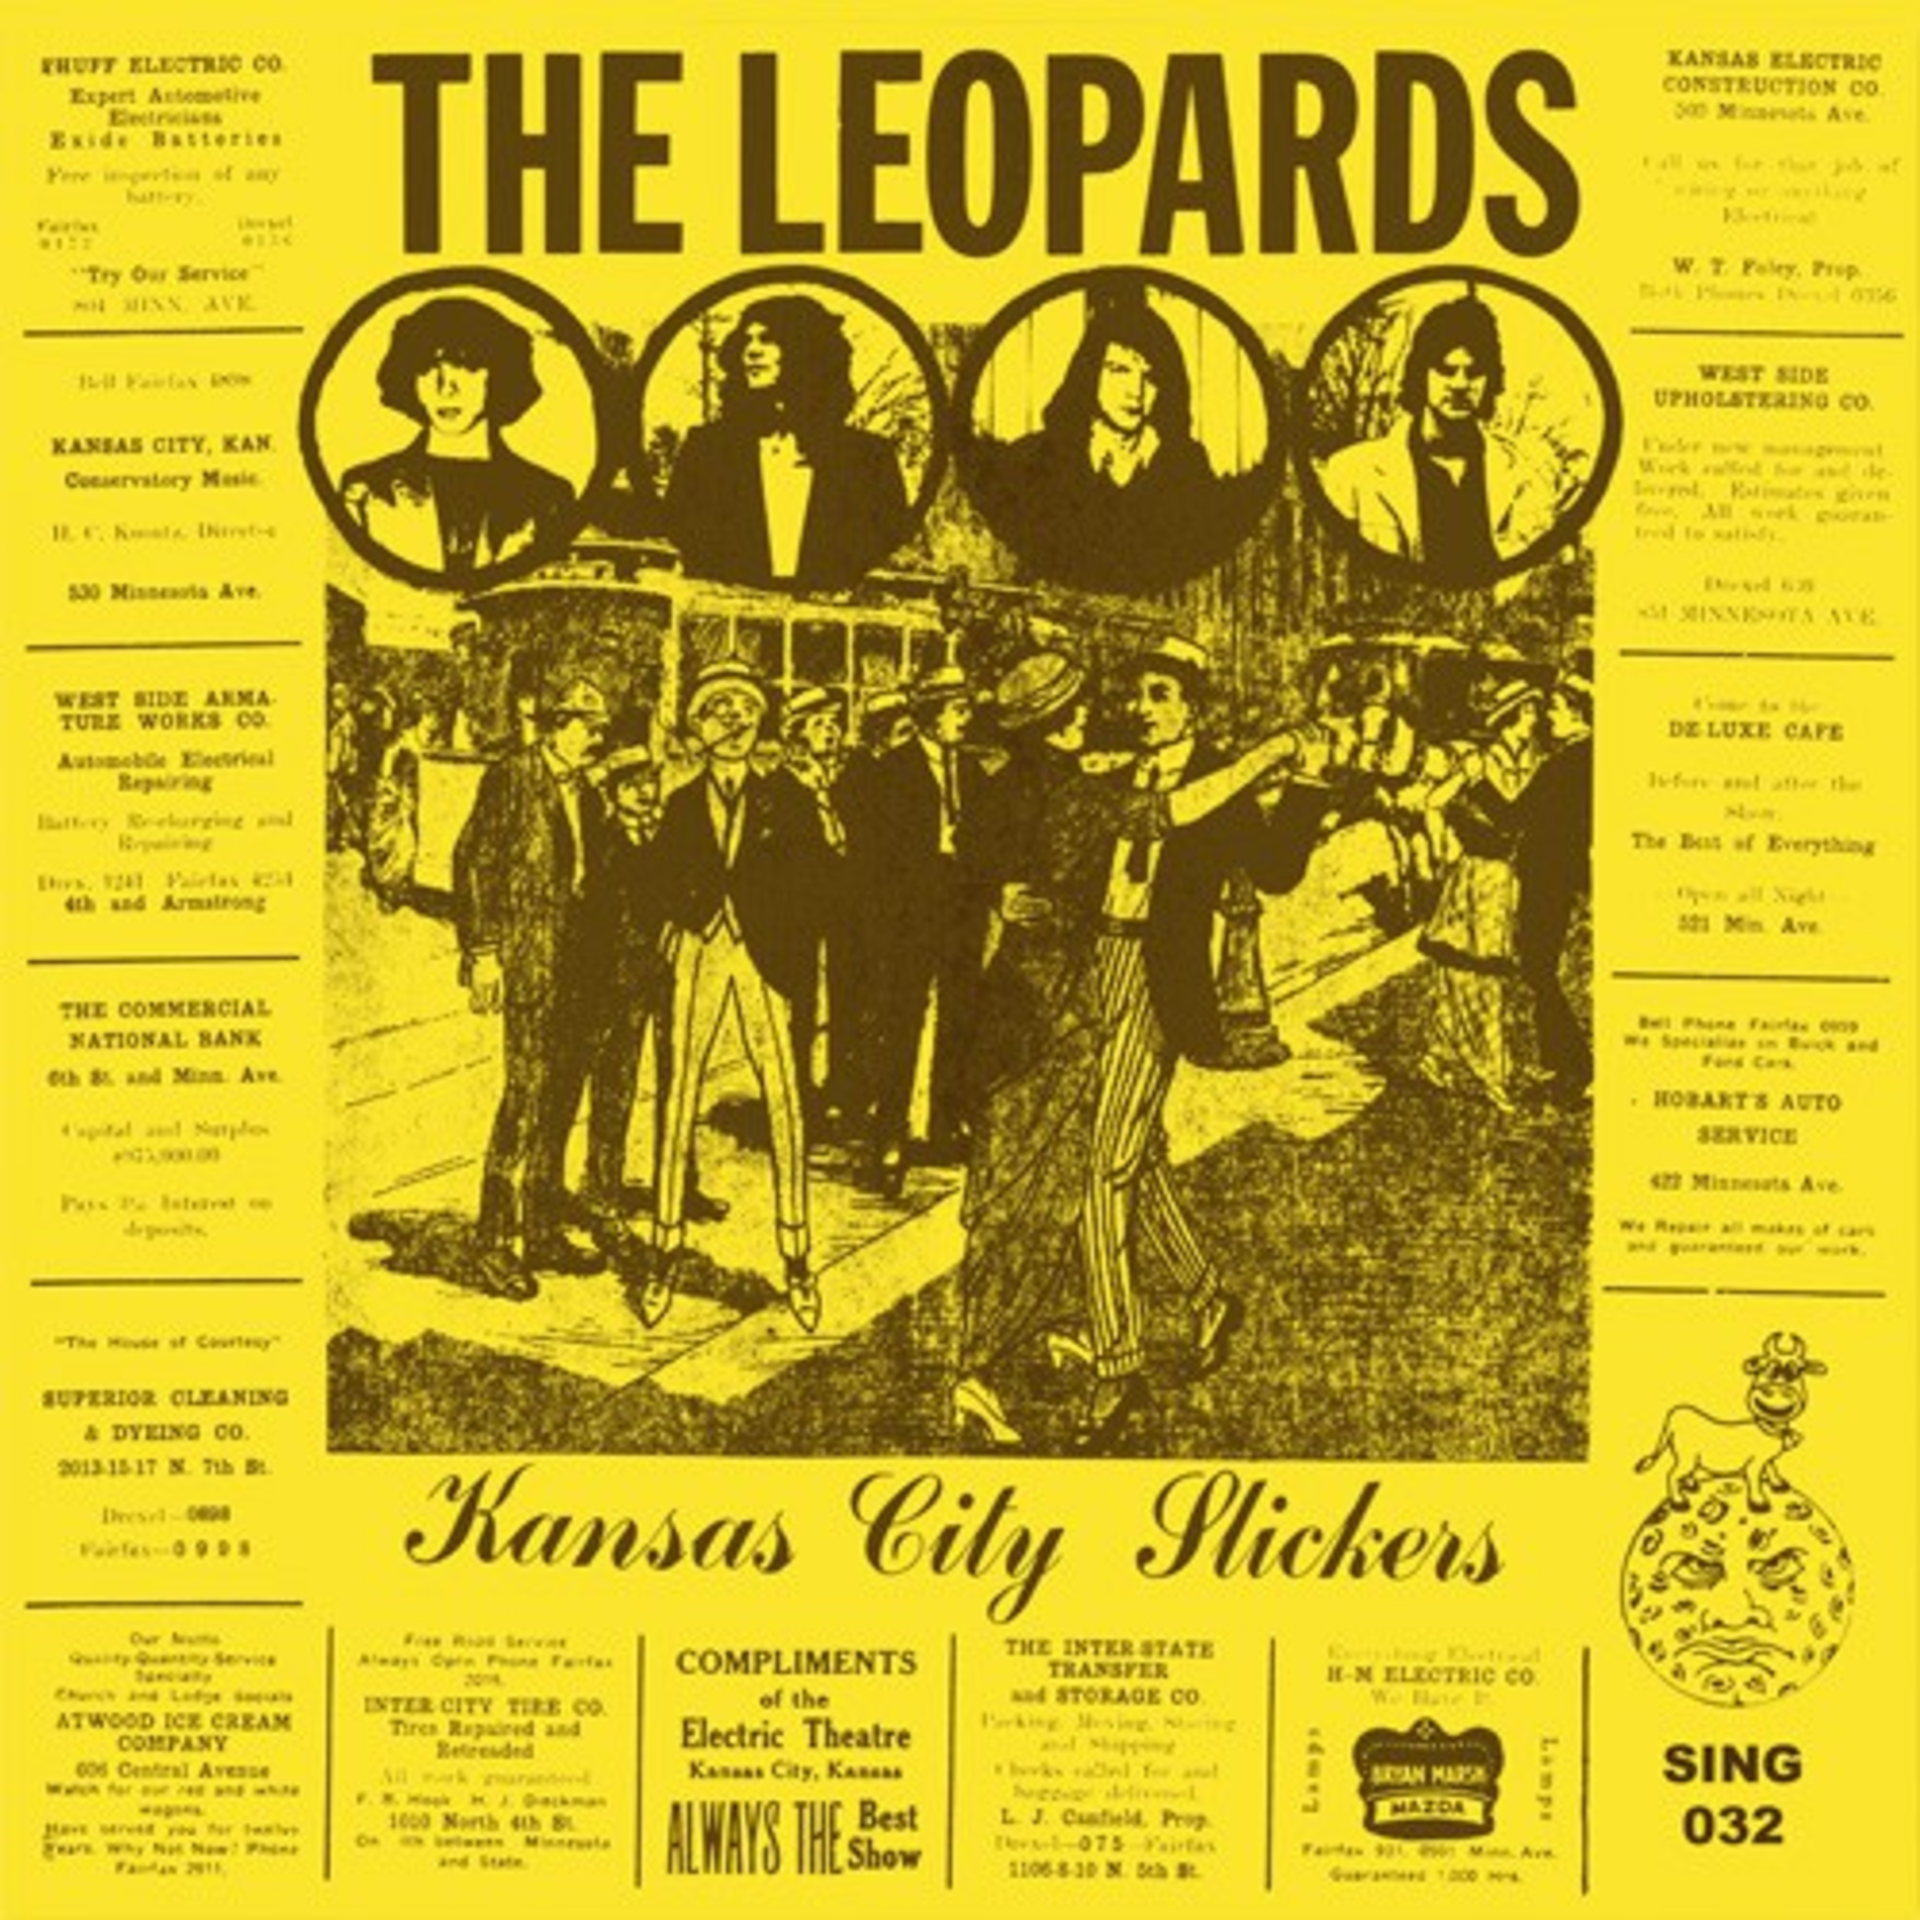 Sing Sing Records Reissues The Leopards Lost Classic Kansas City Slickers